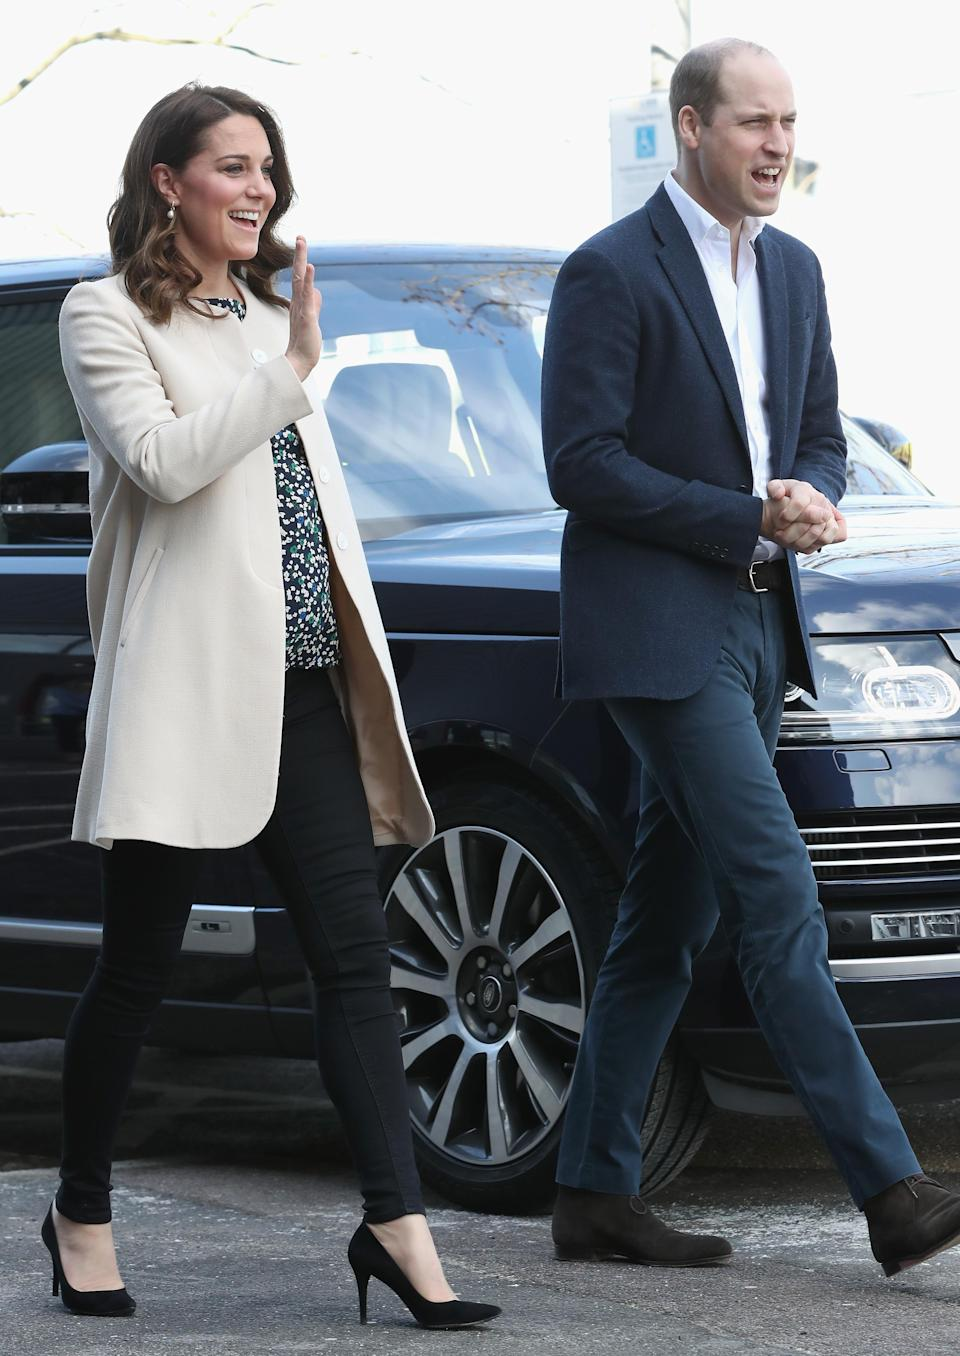 "<p>The Duke and Duchess of Cambridge attended a SportsAid <a rel=""nofollow"" href=""https://uk.style.yahoo.com/duchess-cambridge-goes-casual-final-royal-engagement-140547414.html"" data-ylk=""slk:event;outcm:mb_qualified_link;_E:mb_qualified_link;ct:story;"" class=""link rapid-noclick-resp yahoo-link"">event</a> at Olympic Park in Stratford on 22 March. The event marked the 36-year-old's final engagement before preparing to welcome baby number three. For the occasion, the royal donned skinny jeans and her go-to coat by Goat.<br>Oh, and if you're hoping to get your hands on her <a rel=""nofollow noopener"" href=""https://www.hobbs.co.uk/product/display?productID=0118-6958-9021L00&utm_source=linkshare&utm_medium=affiliate&utm_campaign=8%2Fbtisdd0hQ&utm_content=10&utm_term=UKNetwork&ranMID=38595&ranEAID=8%2Fbtisdd0hQ&ranSiteID=8_btisdd0hQ-8B3hmV740tHDIEd8xHlwIA&siteID=8_btisdd0hQ-8B3hmV740tHDIEd8xHlwIA&SID=3024823&PubName=Mail+Online&EL_COUNTRY=GB&EL_CURR=GBP&EL_LANG=EN"" target=""_blank"" data-ylk=""slk:Hobbs"" class=""link rapid-noclick-resp"">Hobbs</a> blouse, it's just landed in the sale… <em>[Photo: Getty]</em> </p>"